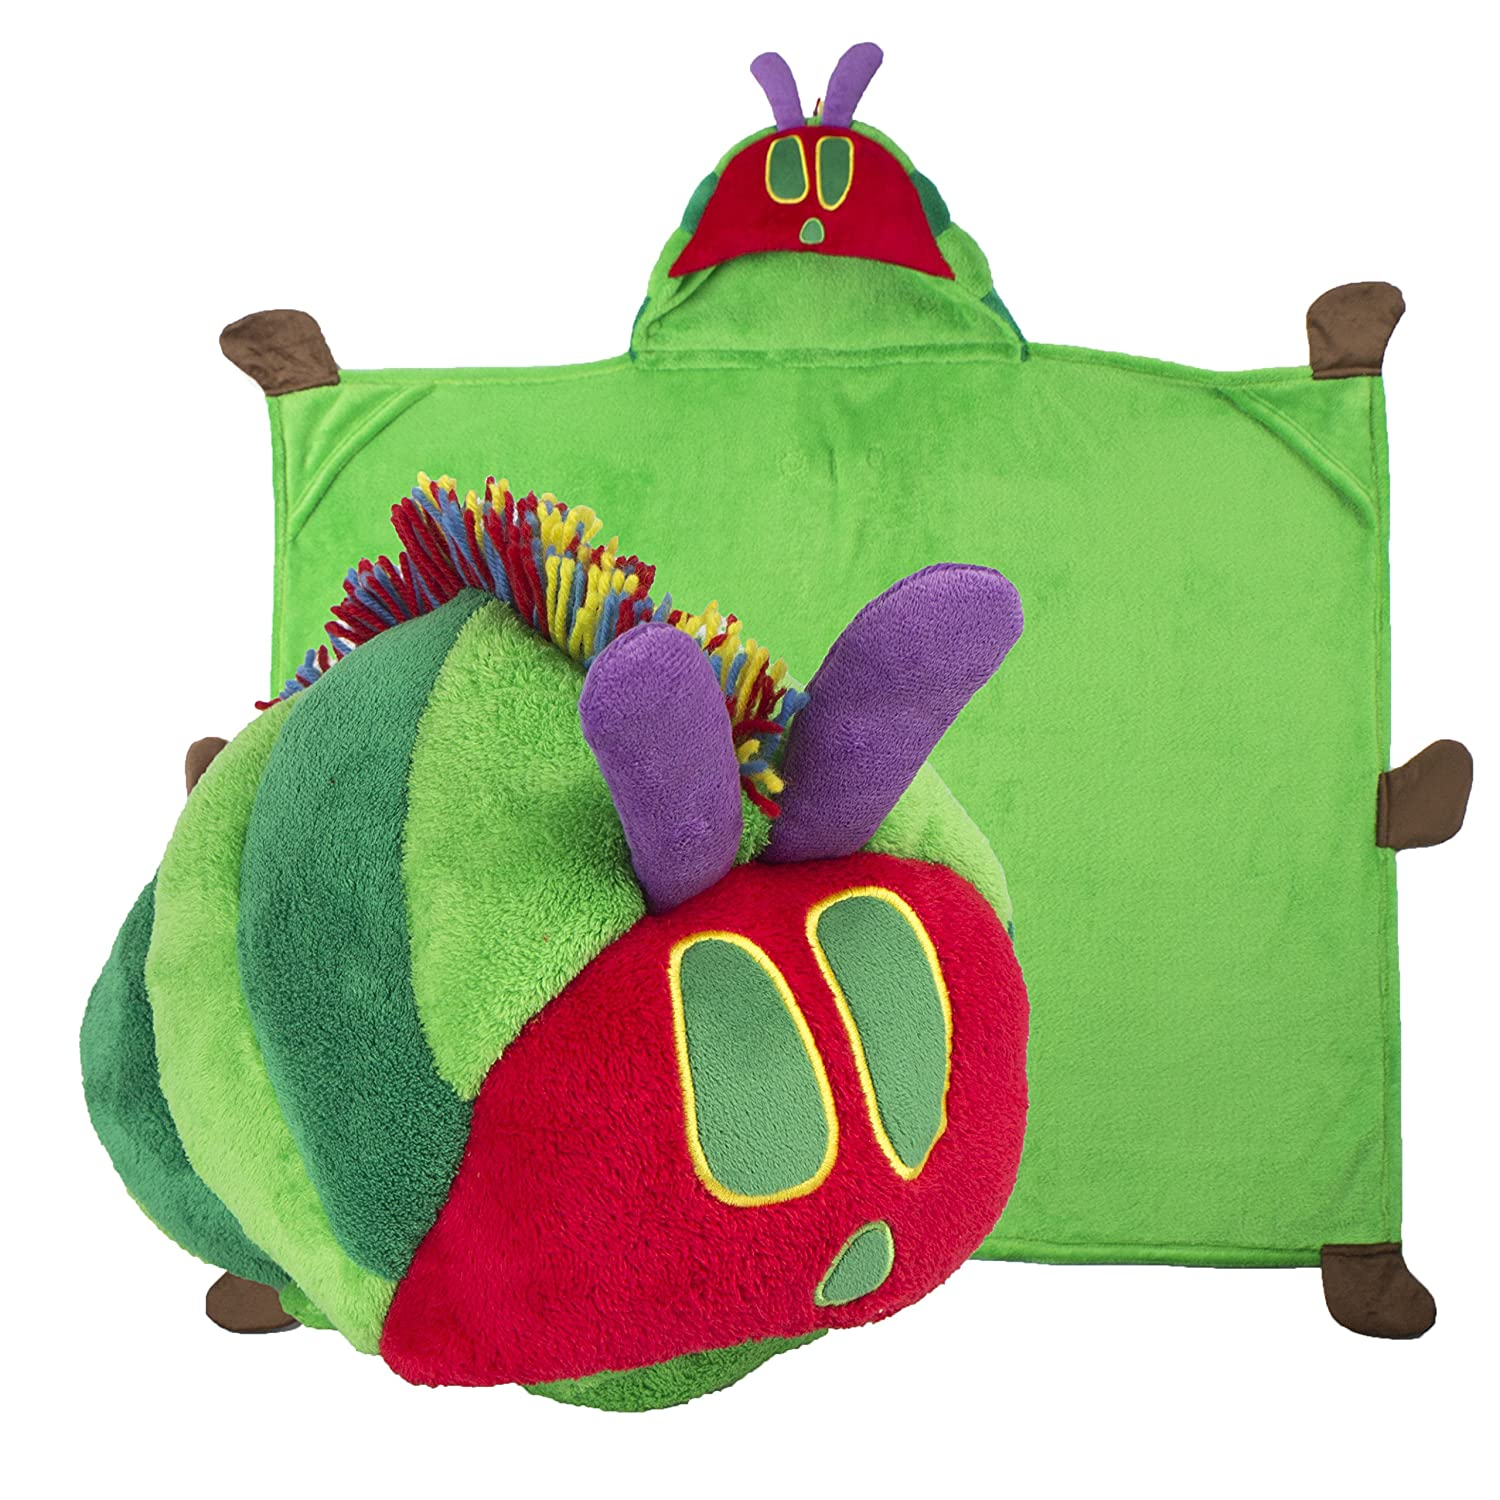 The Very Hungry Caterpillar - Multi-Purpose Stuffed Animal - Pillow or Wearable Hooded Blanket